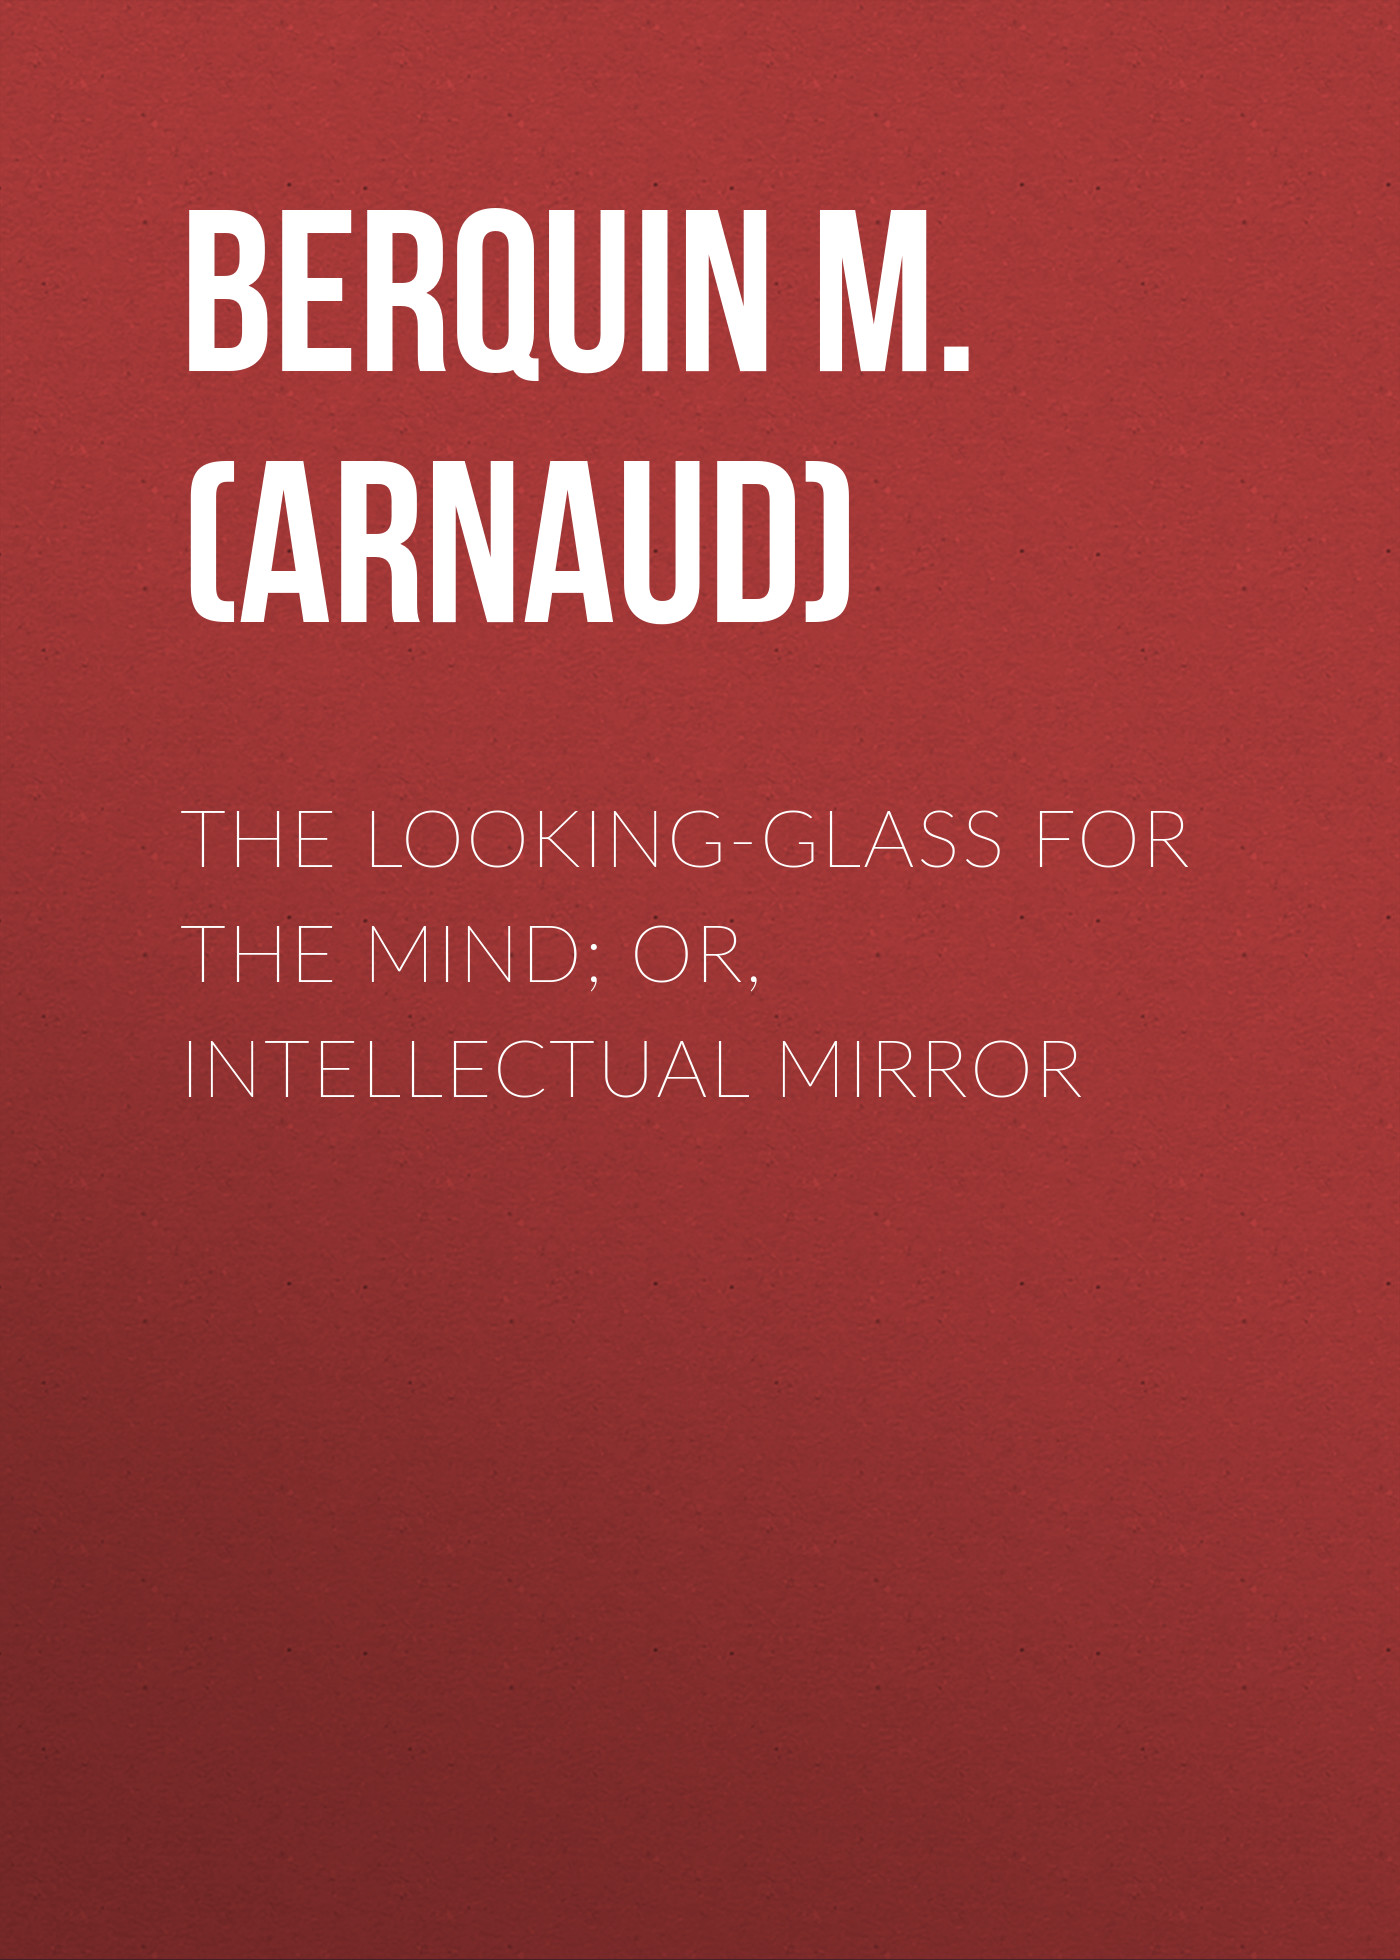 Berquin M. (Arnaud) The Looking-Glass for the Mind; or, Intellectual Mirror arnaud bernard the gospels